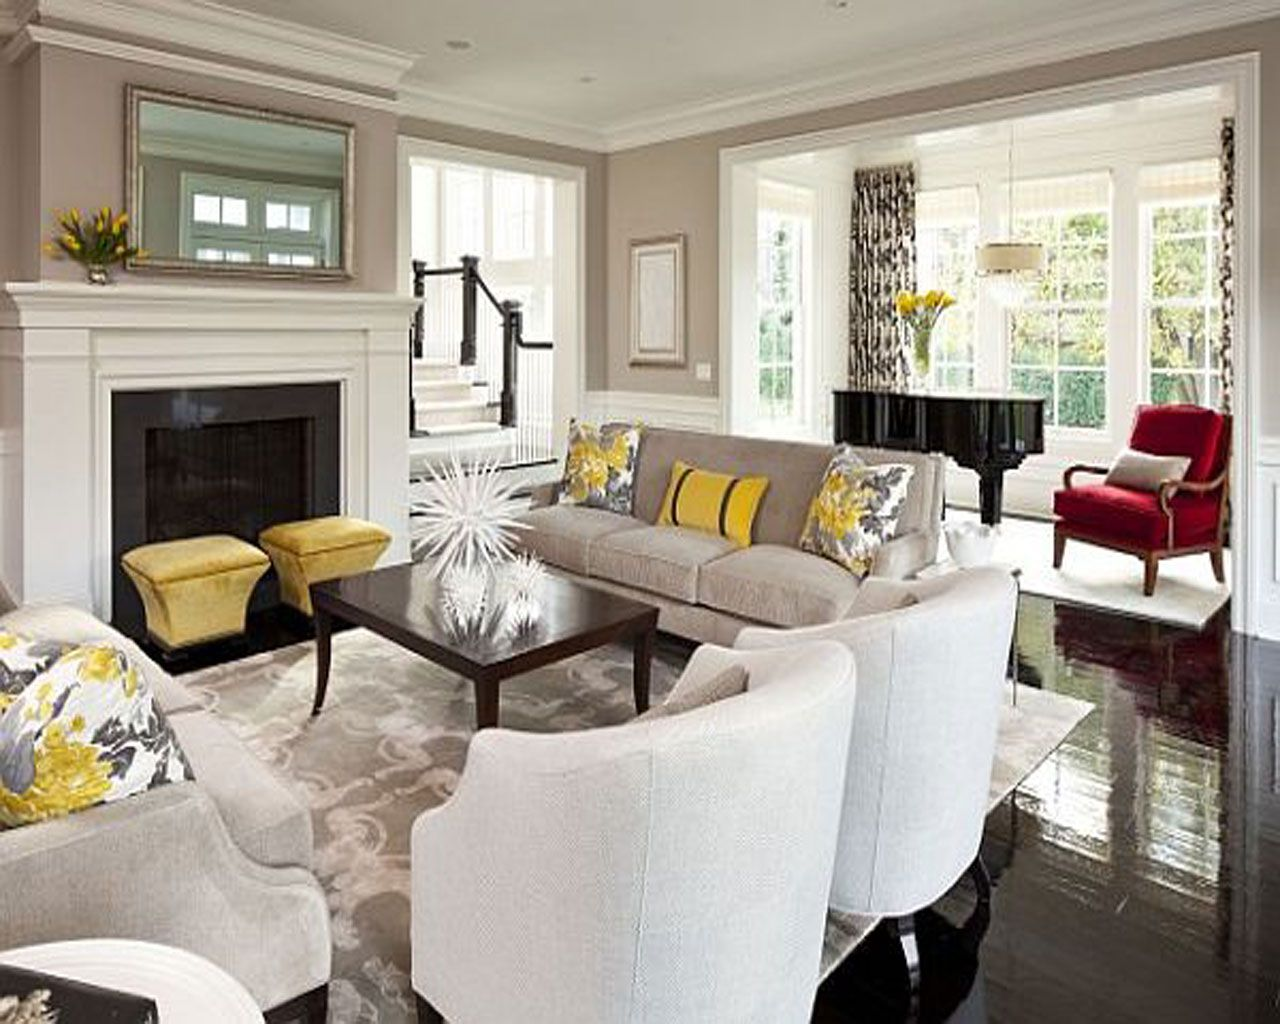 Beau This Living Room Has The Feel Of Contemporary Elegance. Instead Of Having  One Large Area